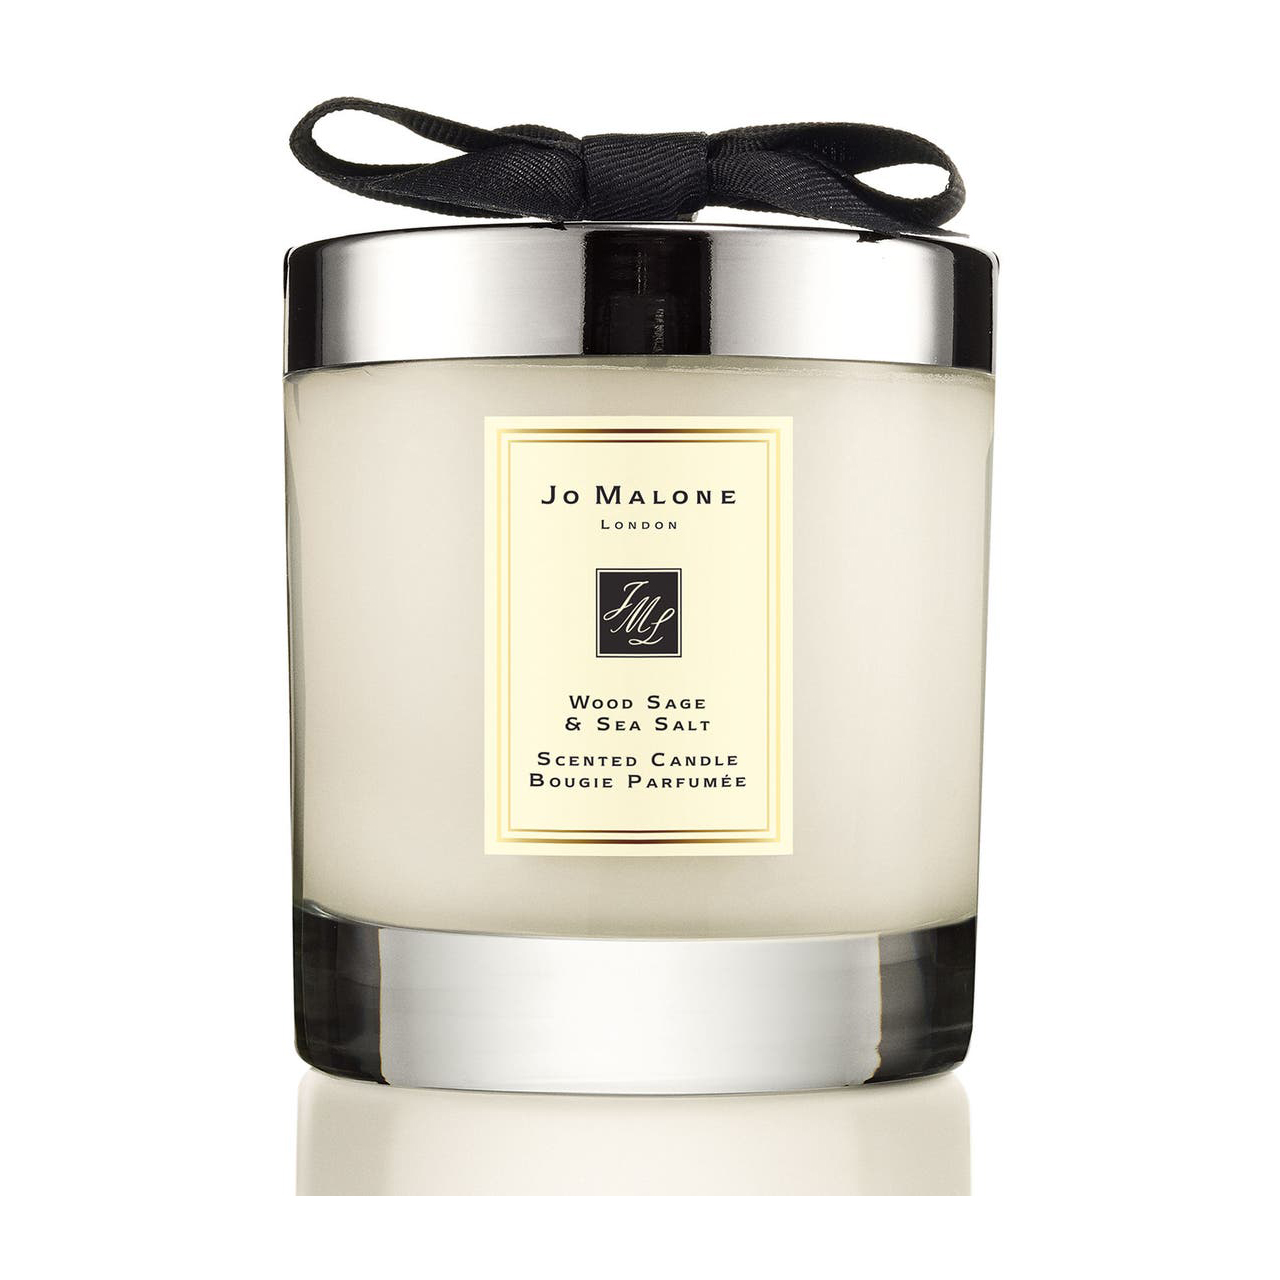 Best gifts for grandma - Jo Malone London Wood Sage & Sea Salt Scented Home Candle